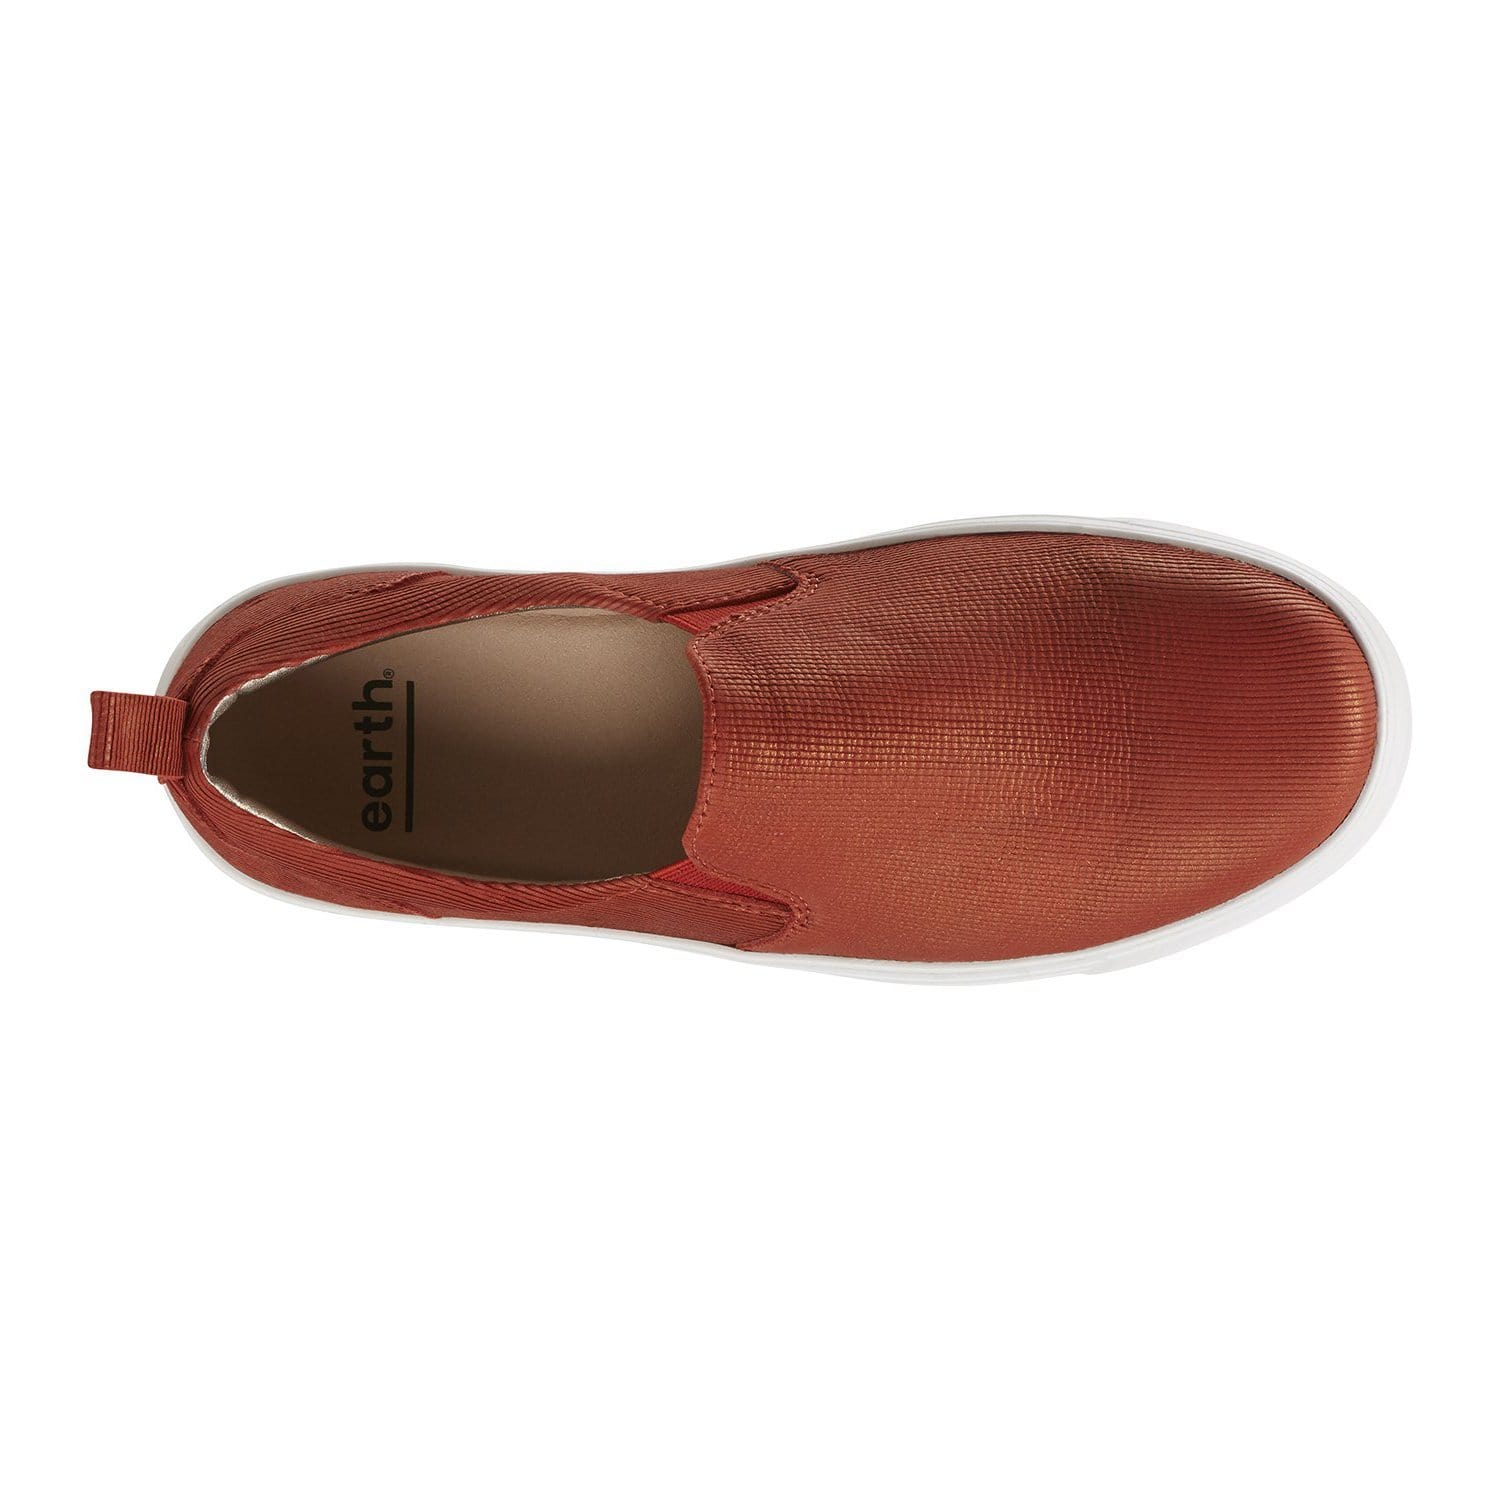 Earth Slip On Sneaker | Women's Rosewood Clove Platform | Simons Shoes